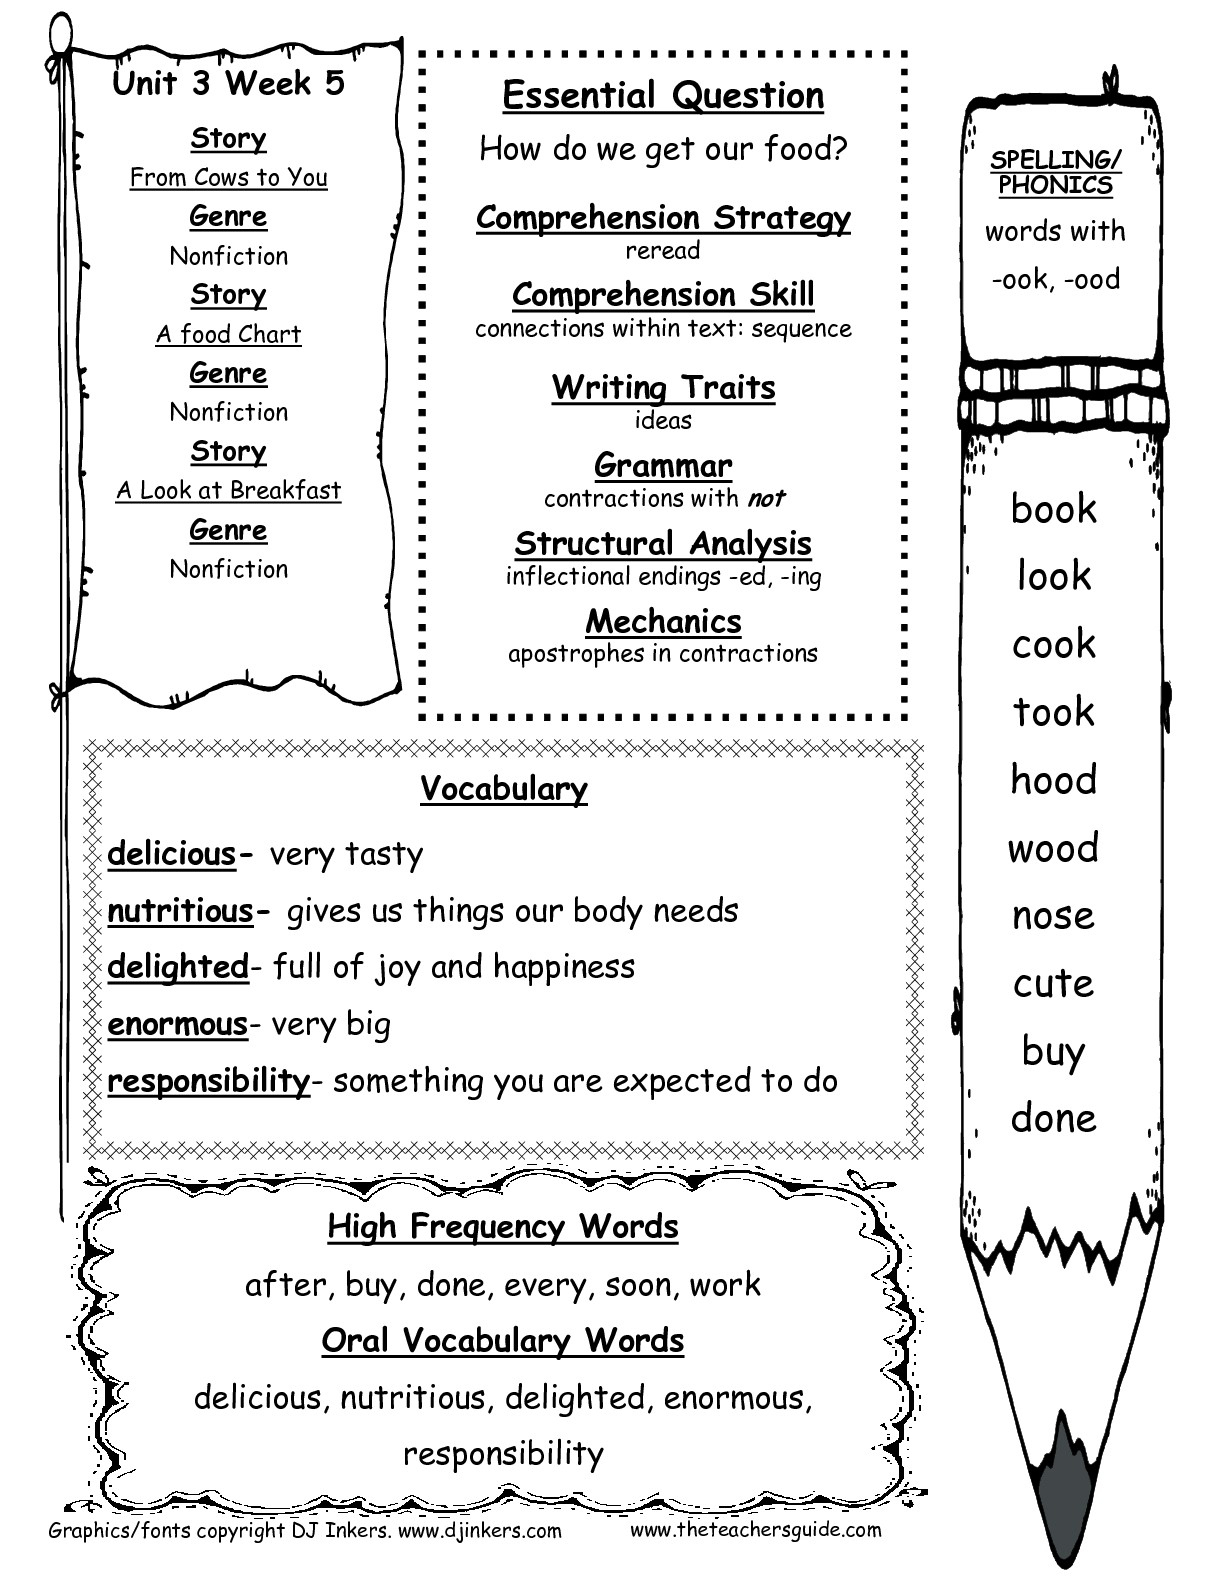 Mcgraw-Hill Wonders First Grade Resources And Printouts - Free | Free Printable Digraph Worksheets For First Grade